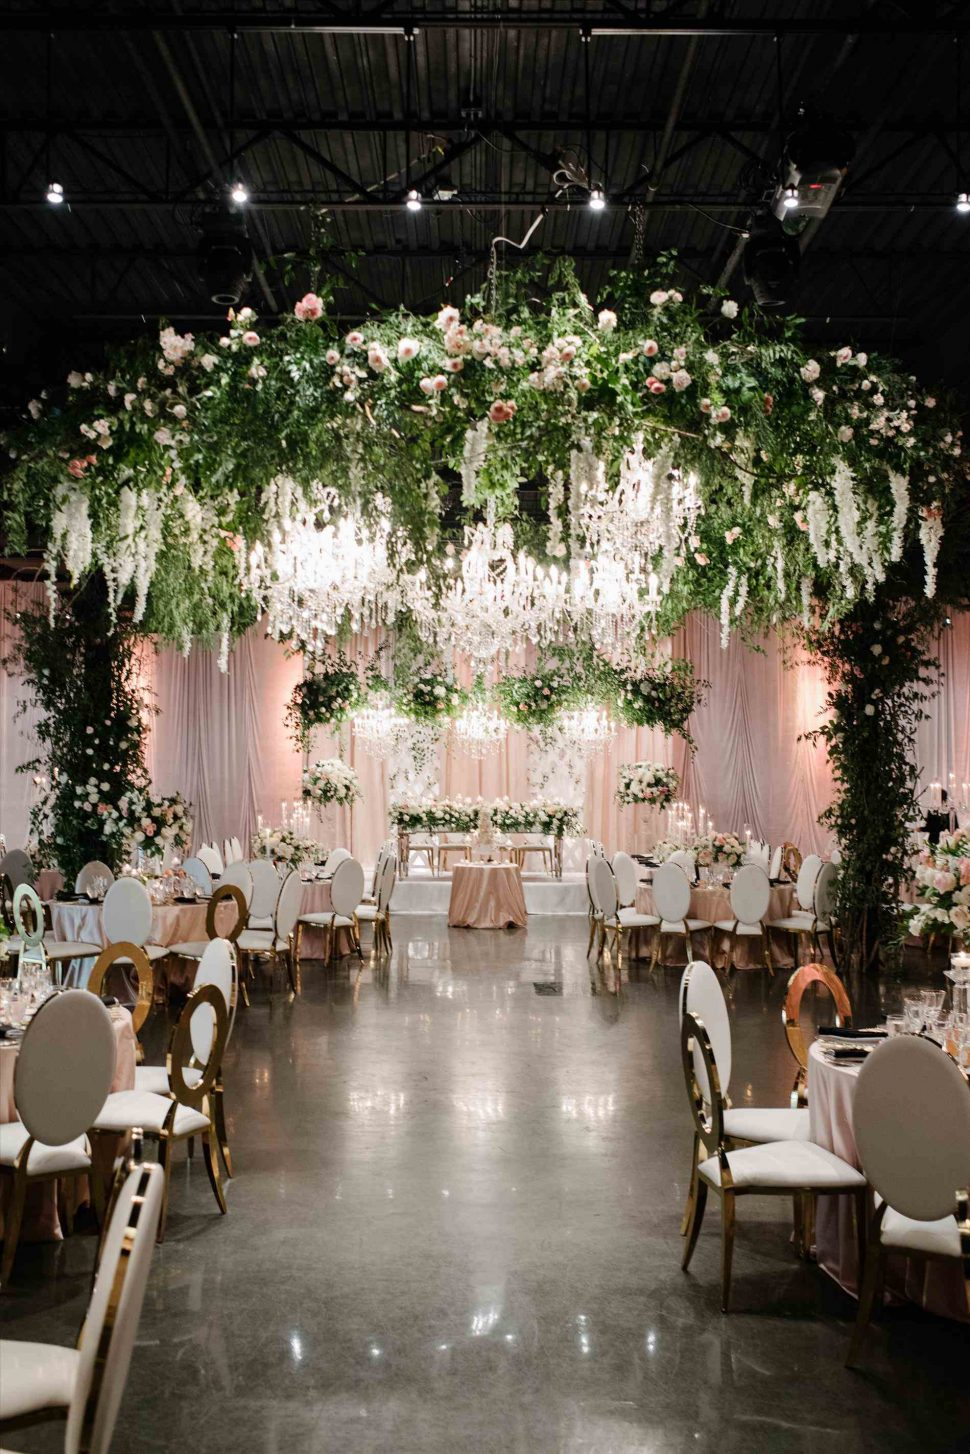 indoor-garden-wedding-decor-outdoor-venues-ideas-klang-valley-reception-theme-featured-s-from-rebecca-chan-970x1454.jpg